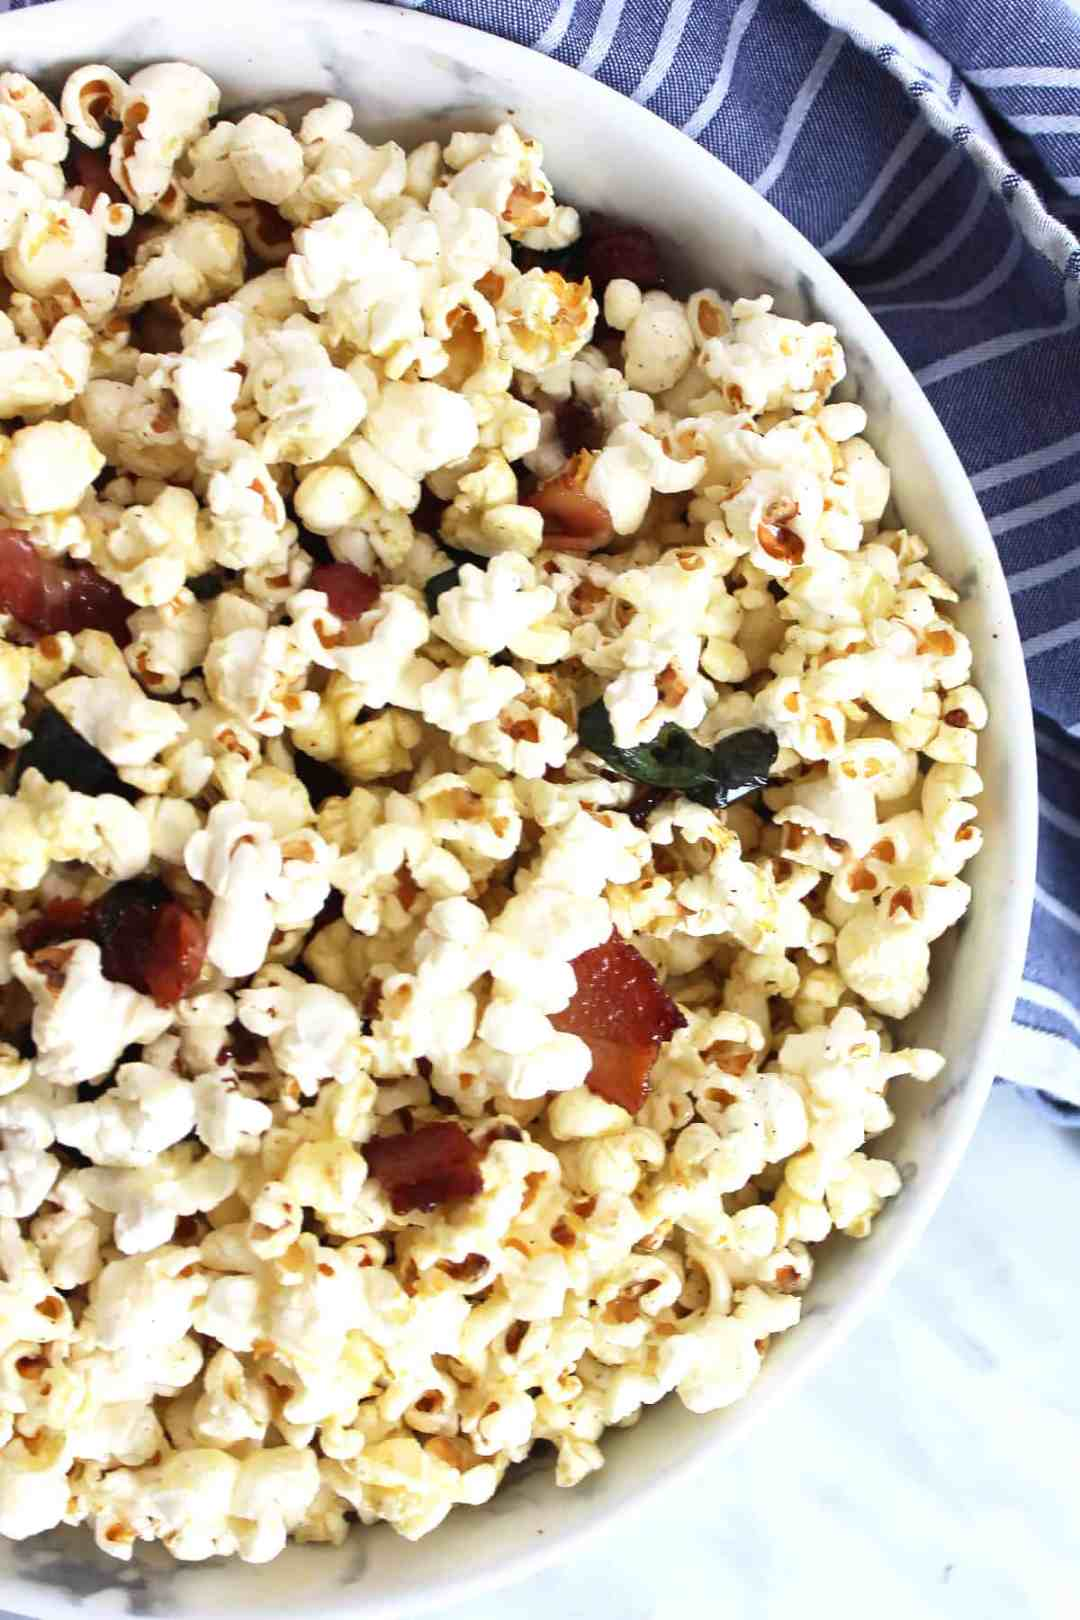 Popcorn with bacon and jalapeno bits